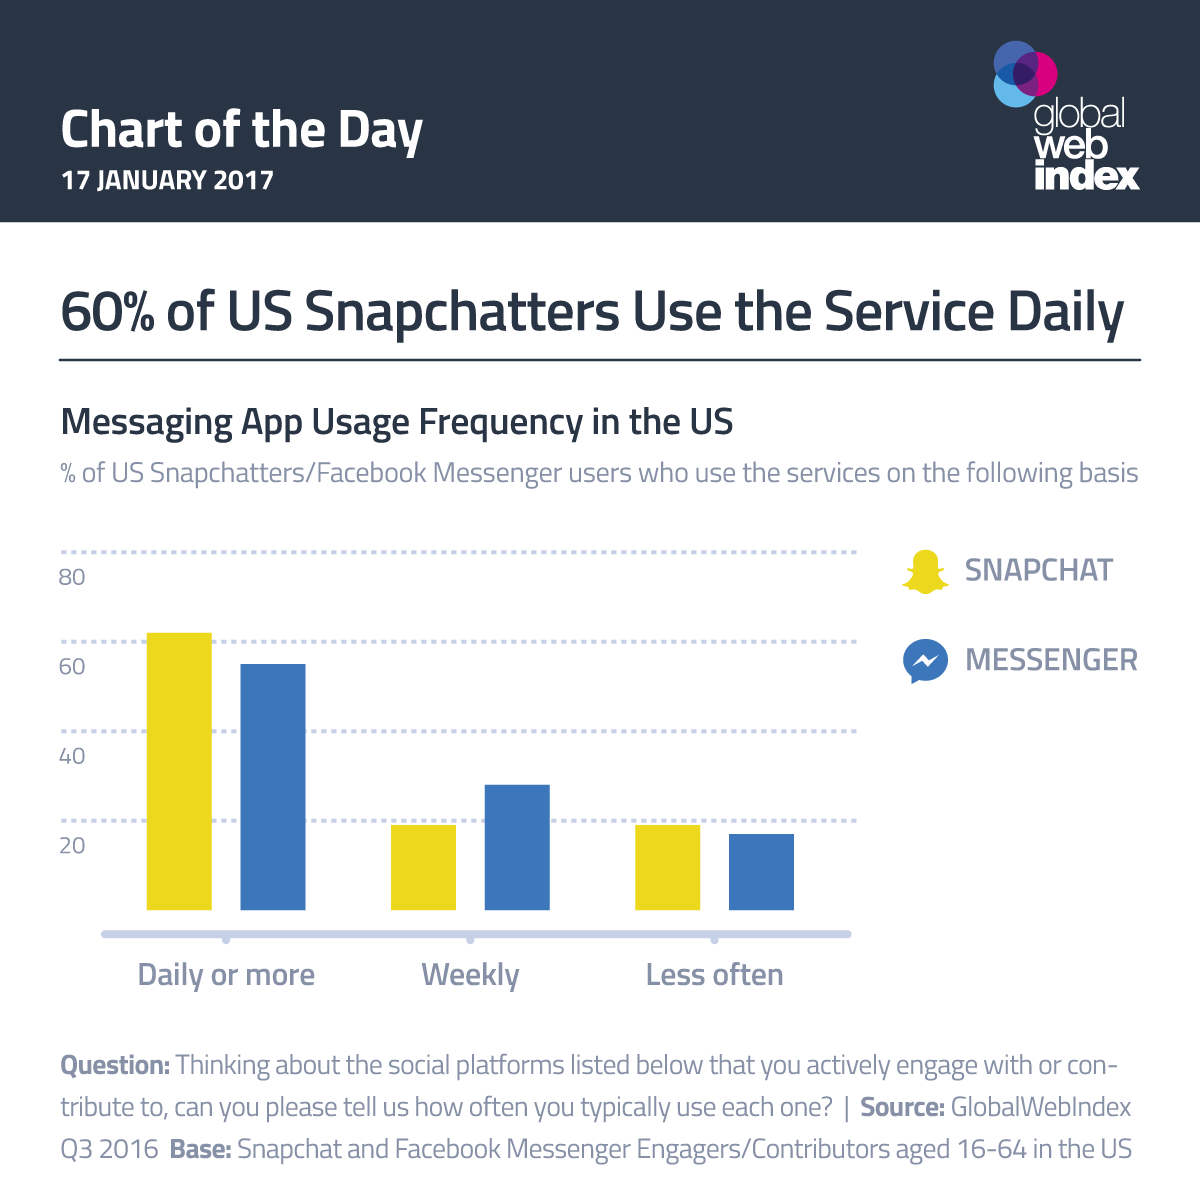 60% of US Snapchatters Use the Service Daily